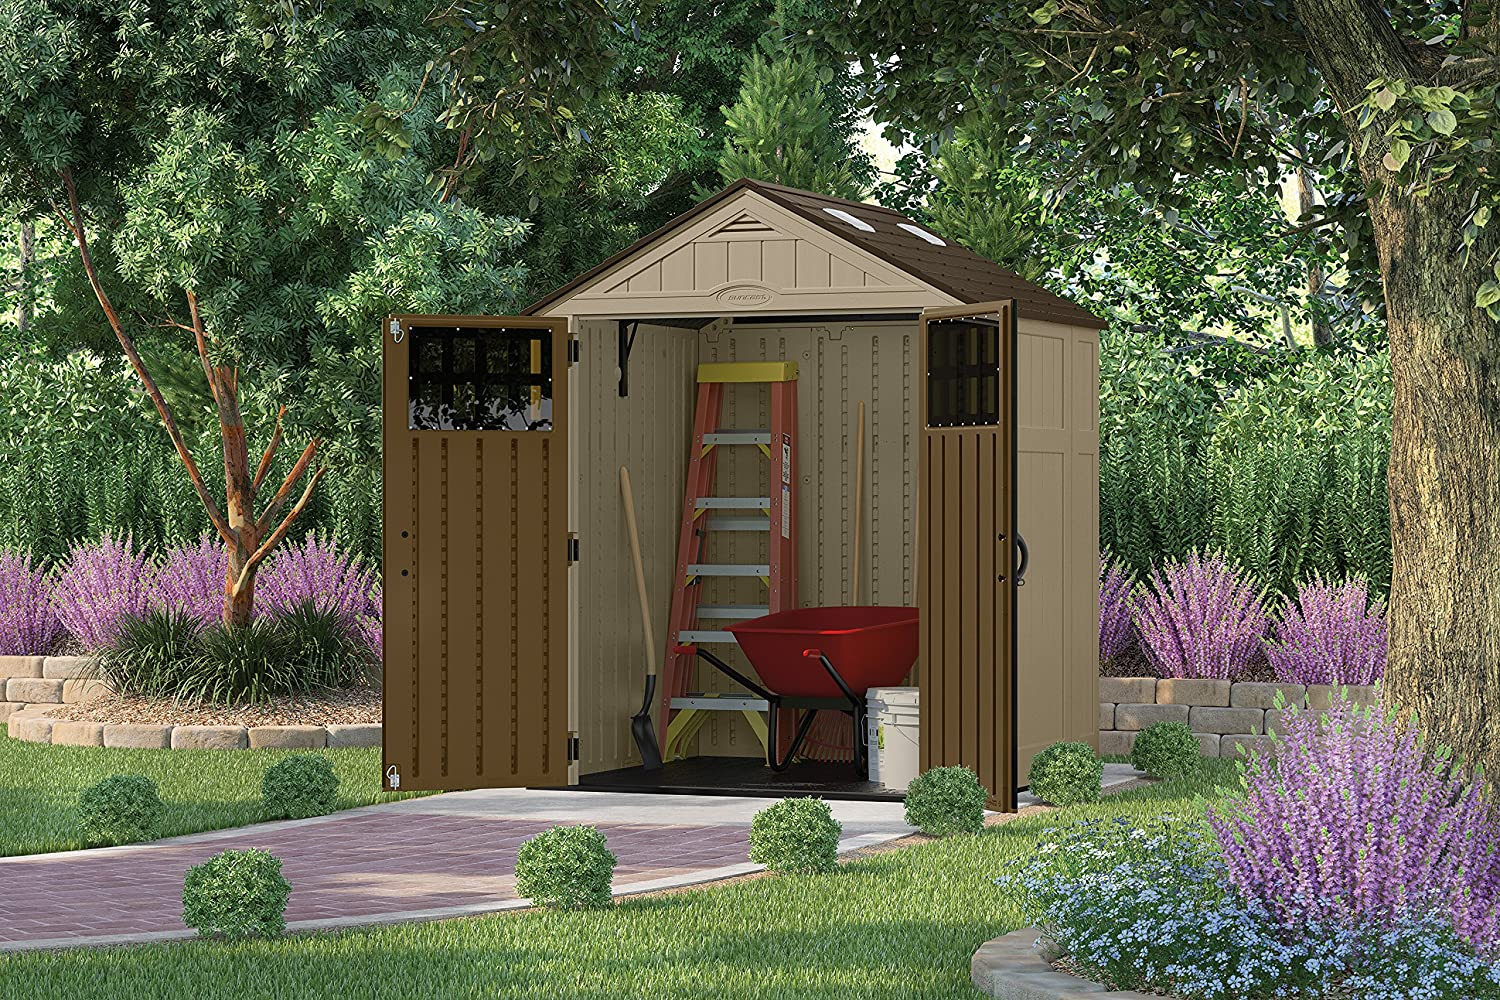 amazoncom suncast bms6510d 6 feet by 5 feet blow molded storage shed garden outdoor - Garden Sheds 6 X 5